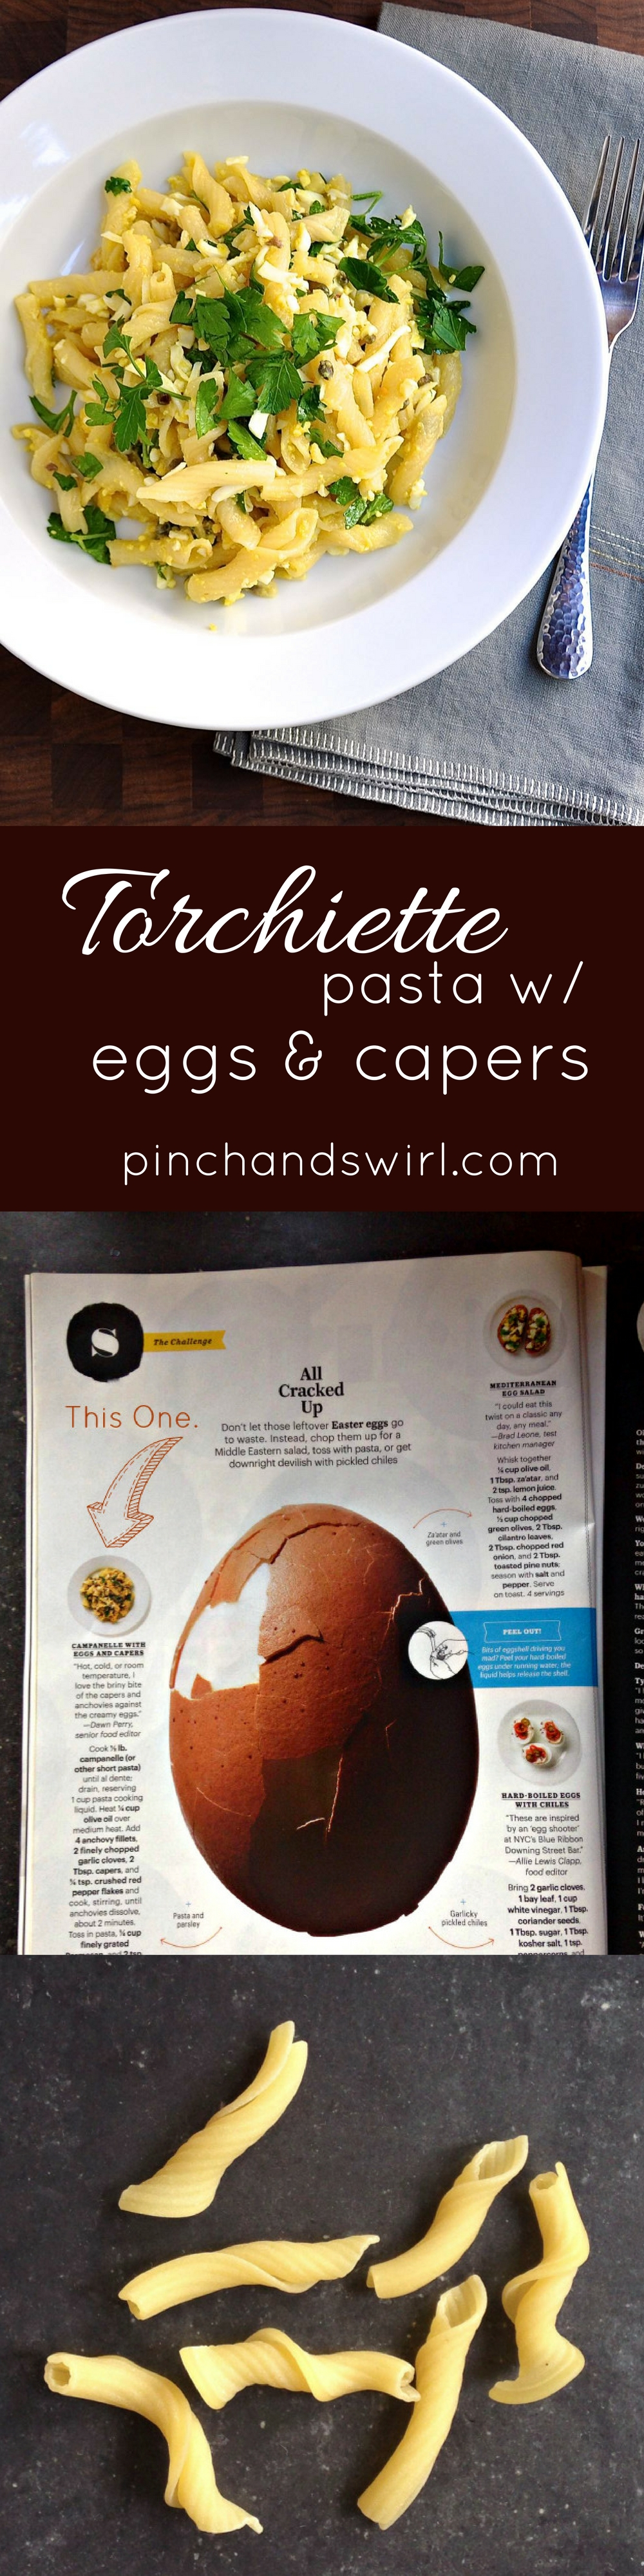 Torchiette Pasta with Eggs and Capers - Easy pasta recipe with shredded boiled eggs and capers is an absolute flavor bomb!